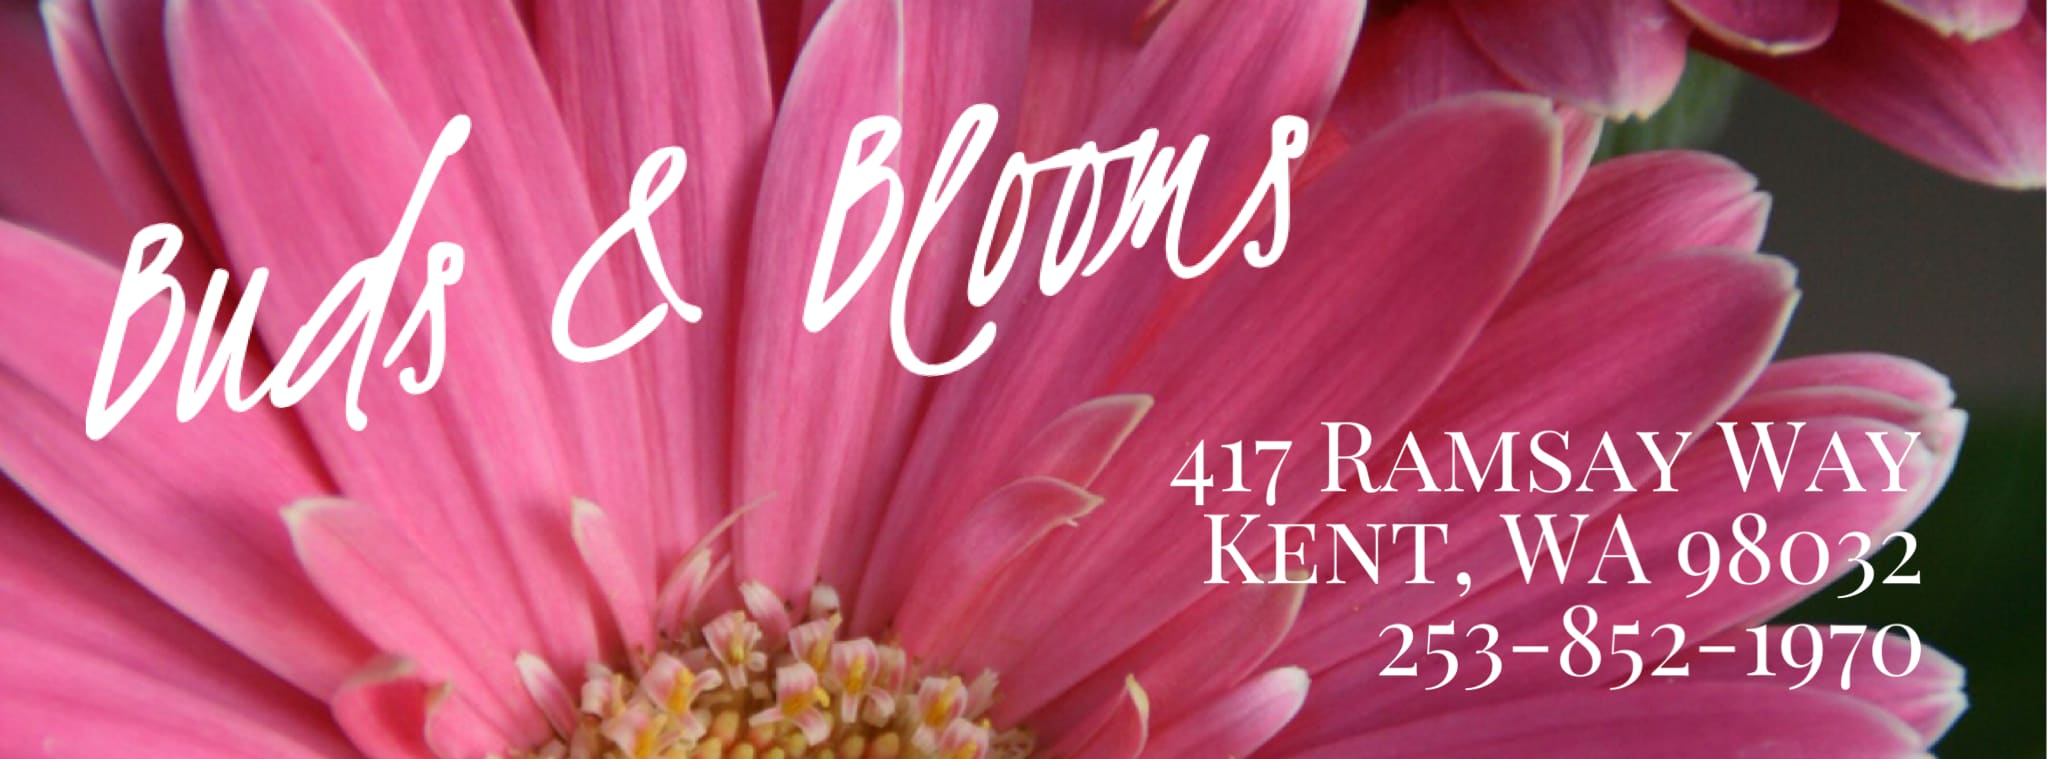 Kent florist flower delivery by kent buds blooms izmirmasajfo